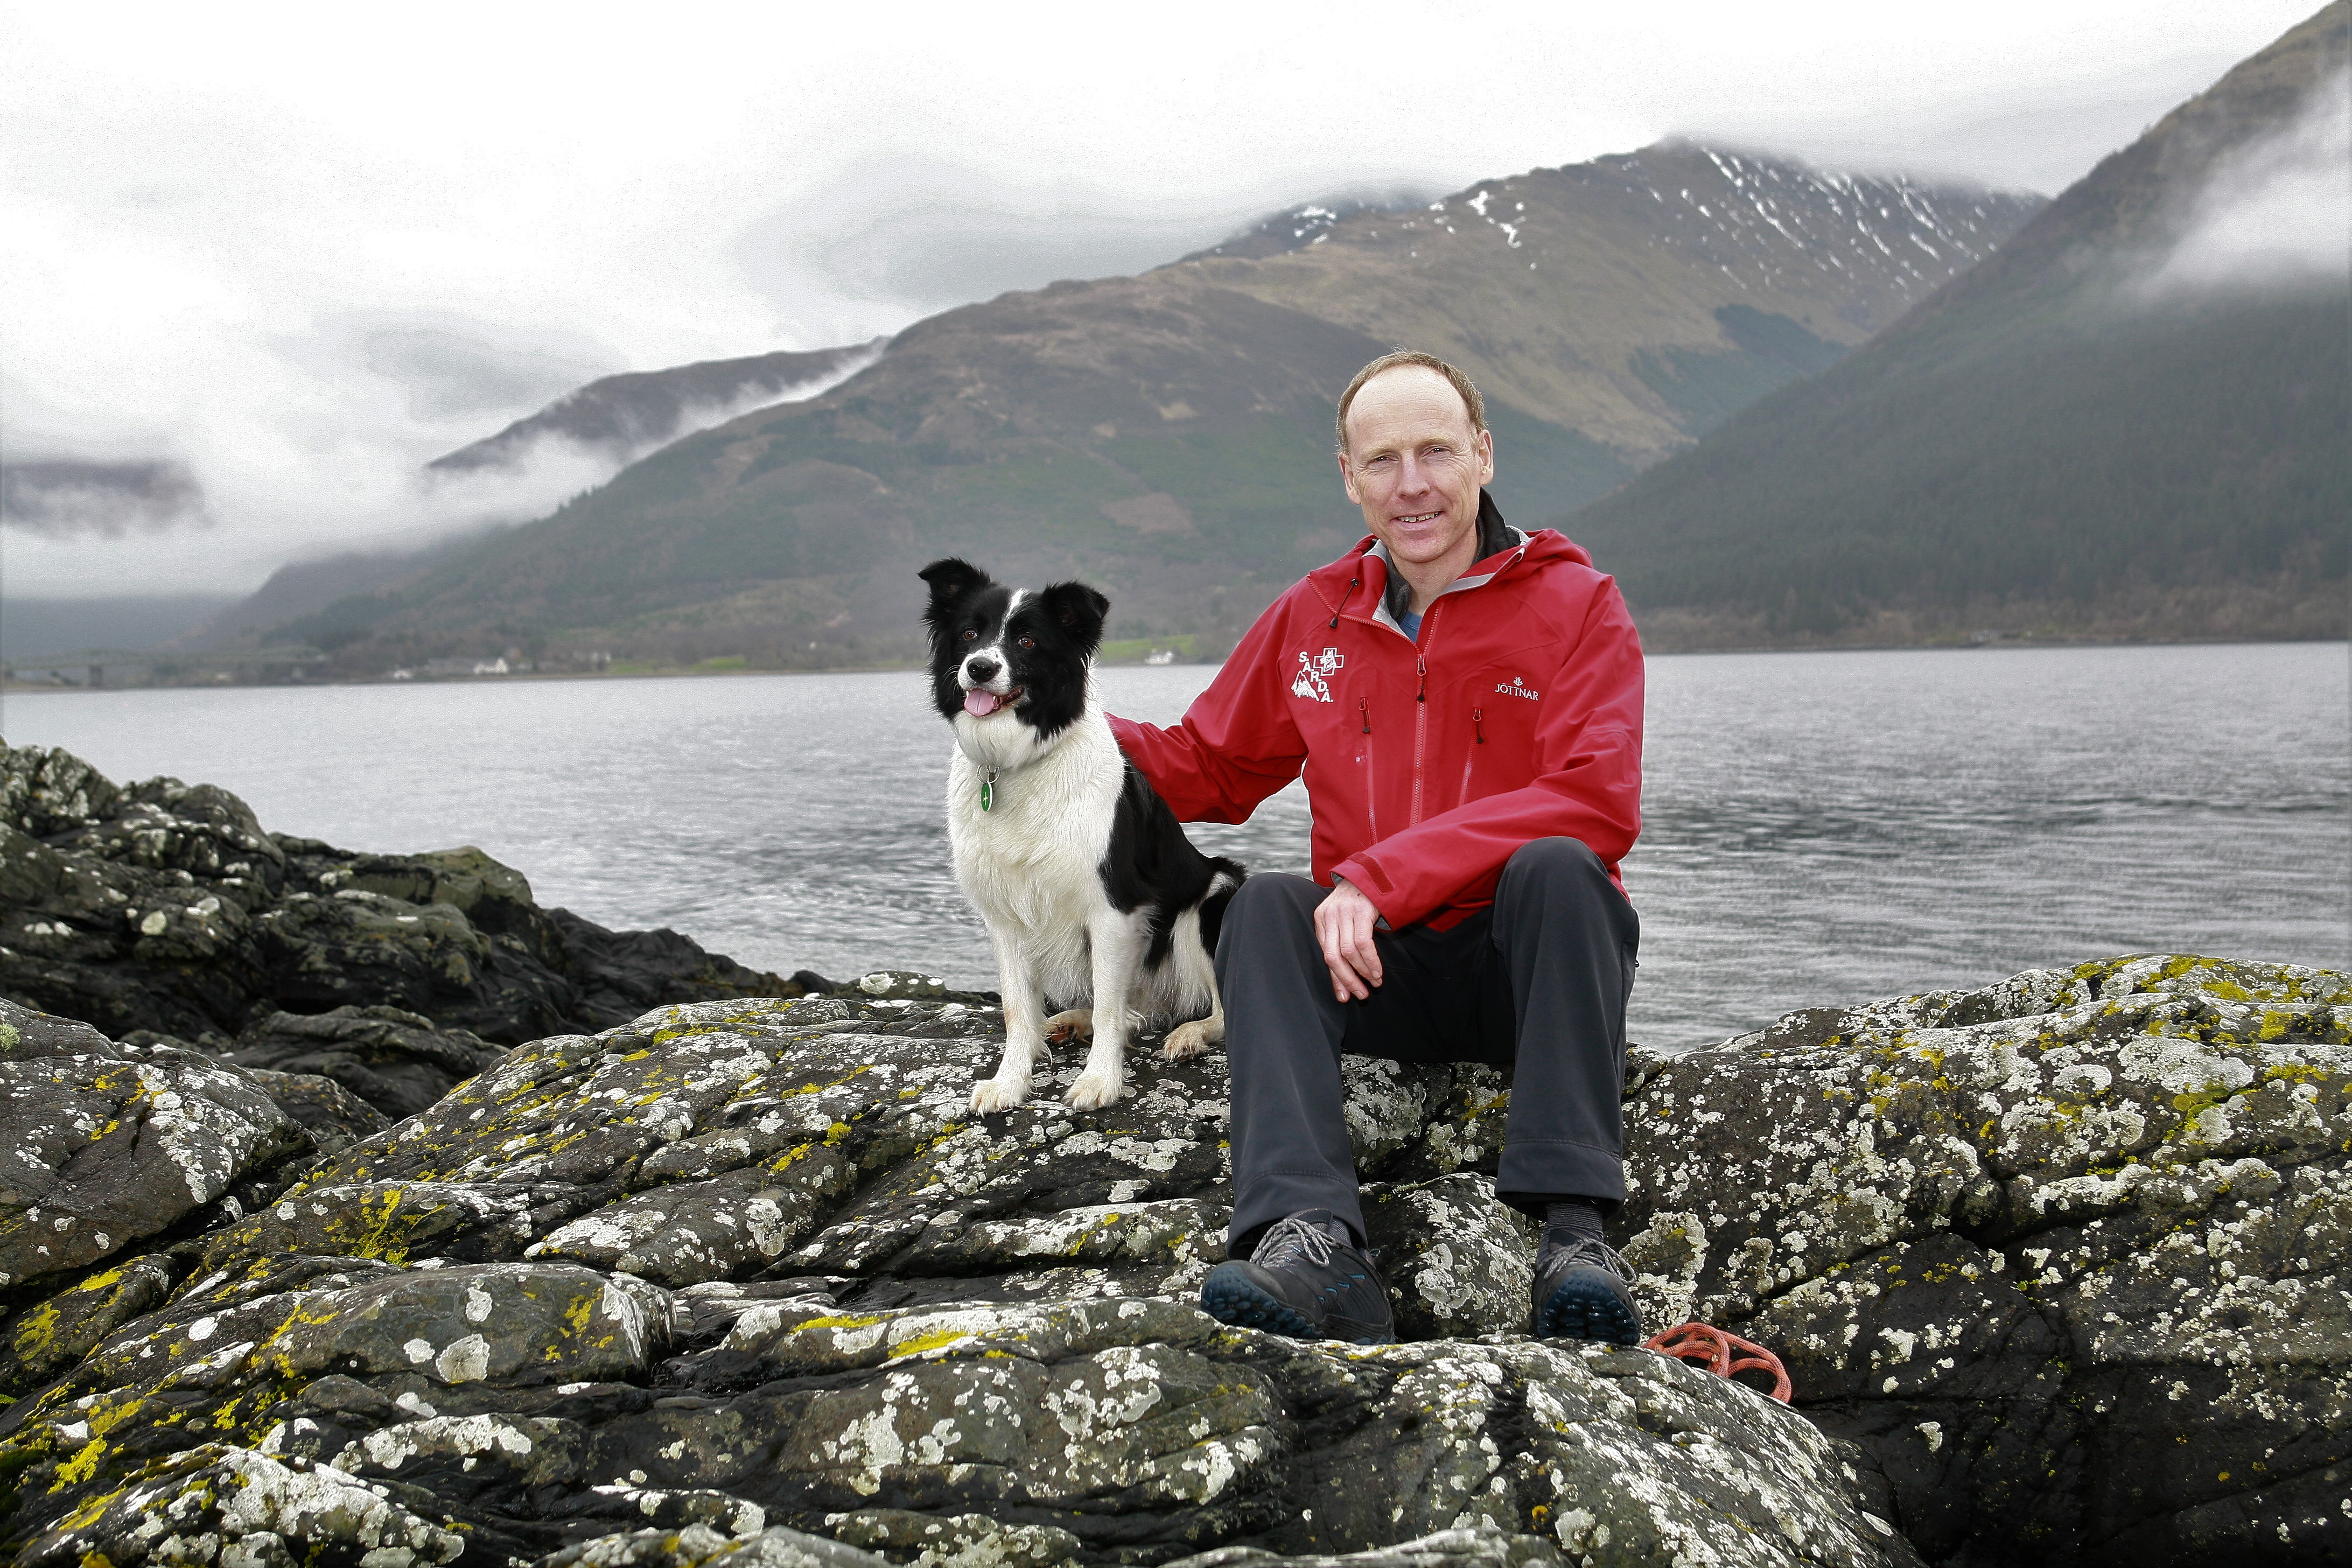 Philip GasKell of Search and Rescue Dog Association Scotland and his dog Jess.